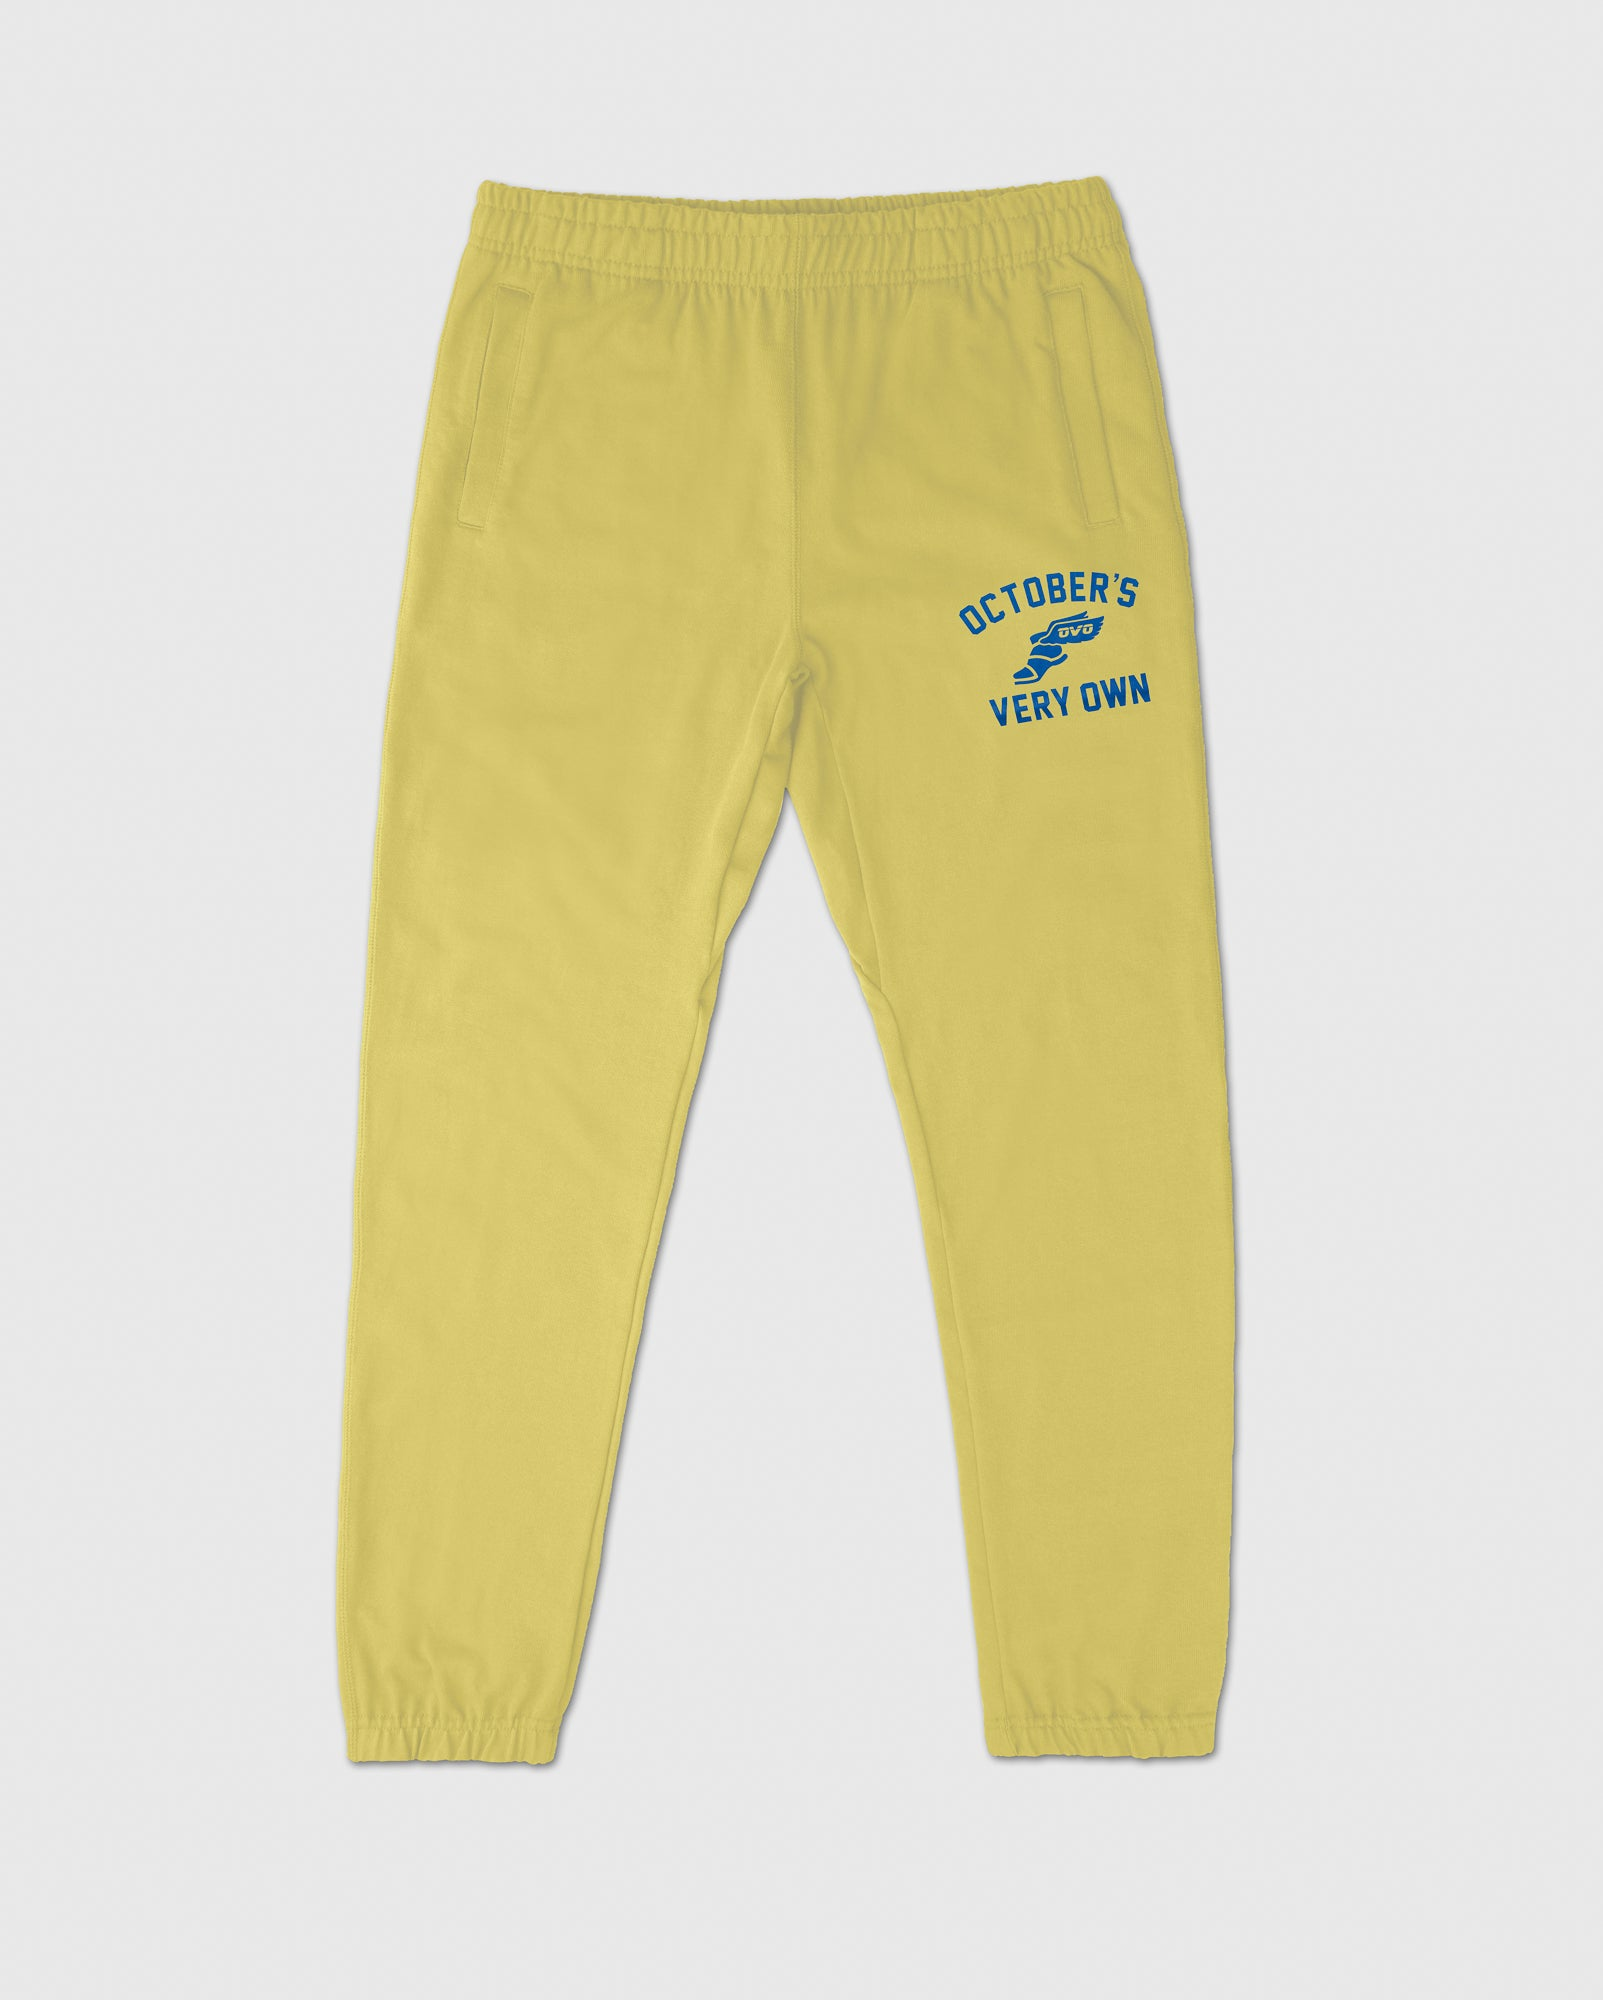 CROSS COUNTRY SWEATPANT - PALE YELLOW IMAGE #1